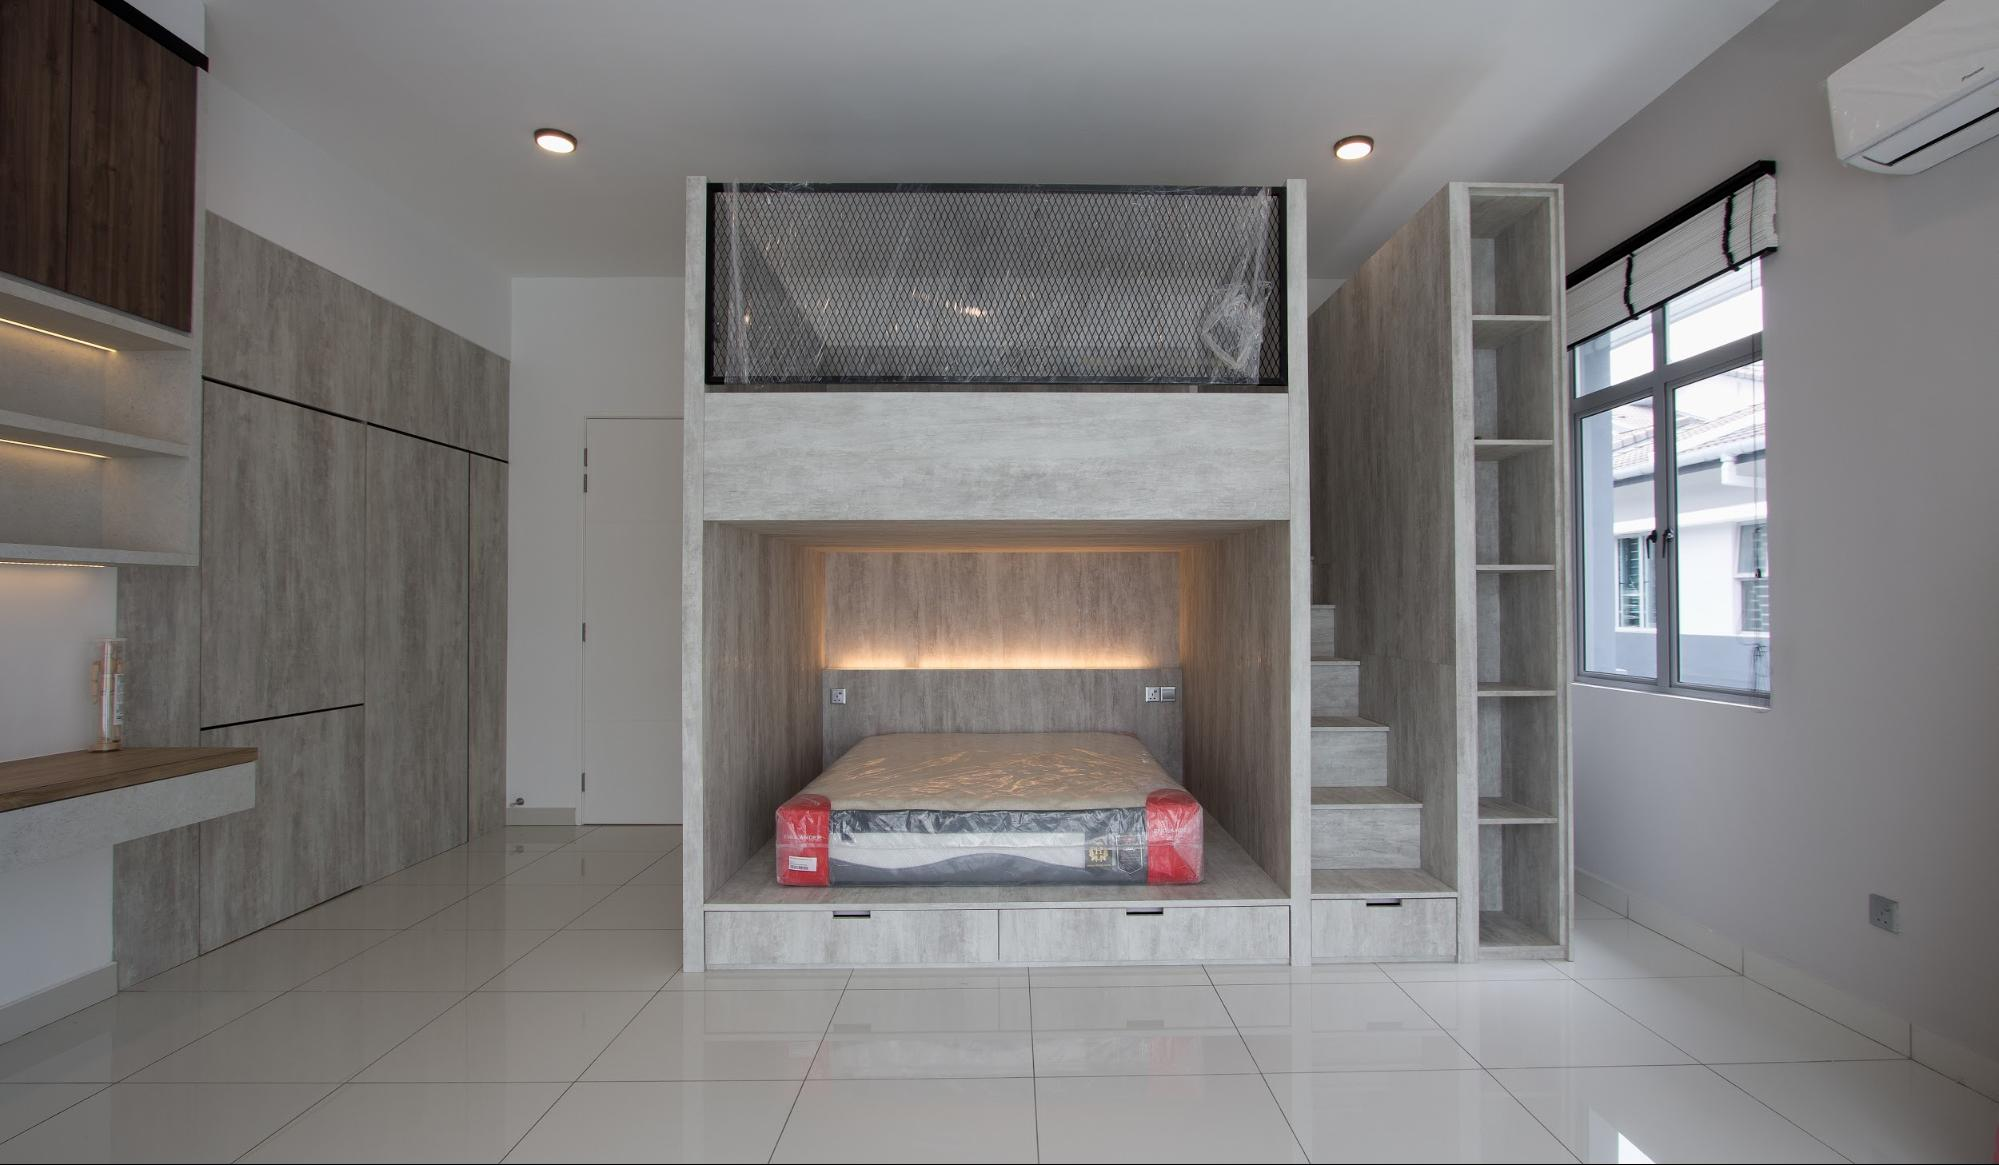 Custom made double-decker bed in grey laminates and built-in storage